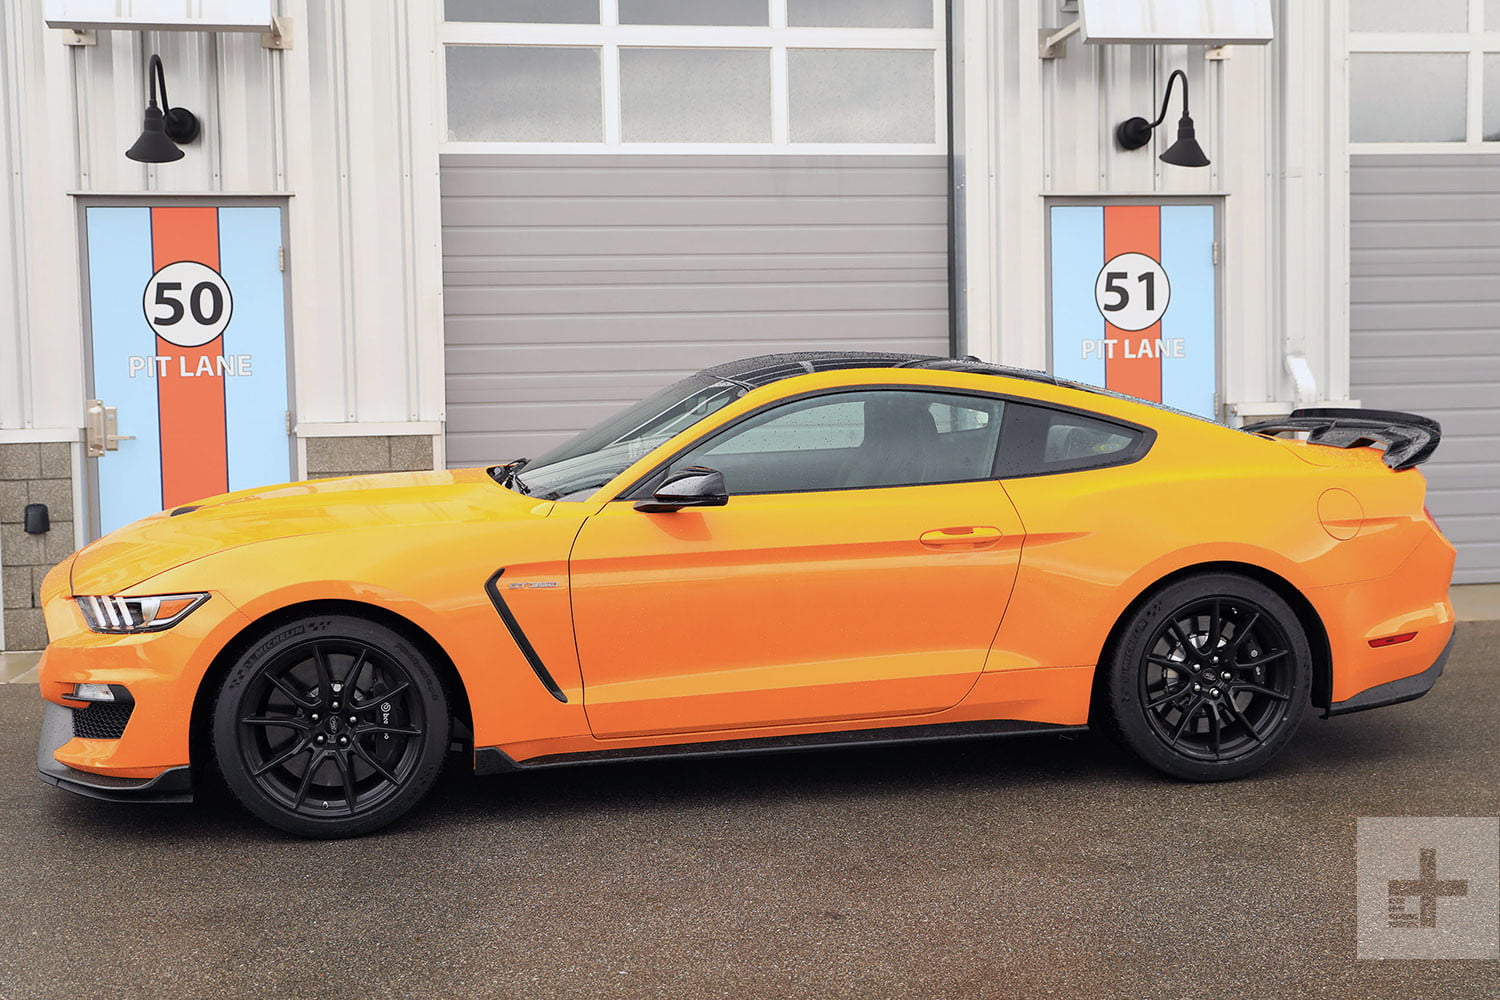 2019 Ford Mustang Shelby GT350 First Drive | Digital Trends